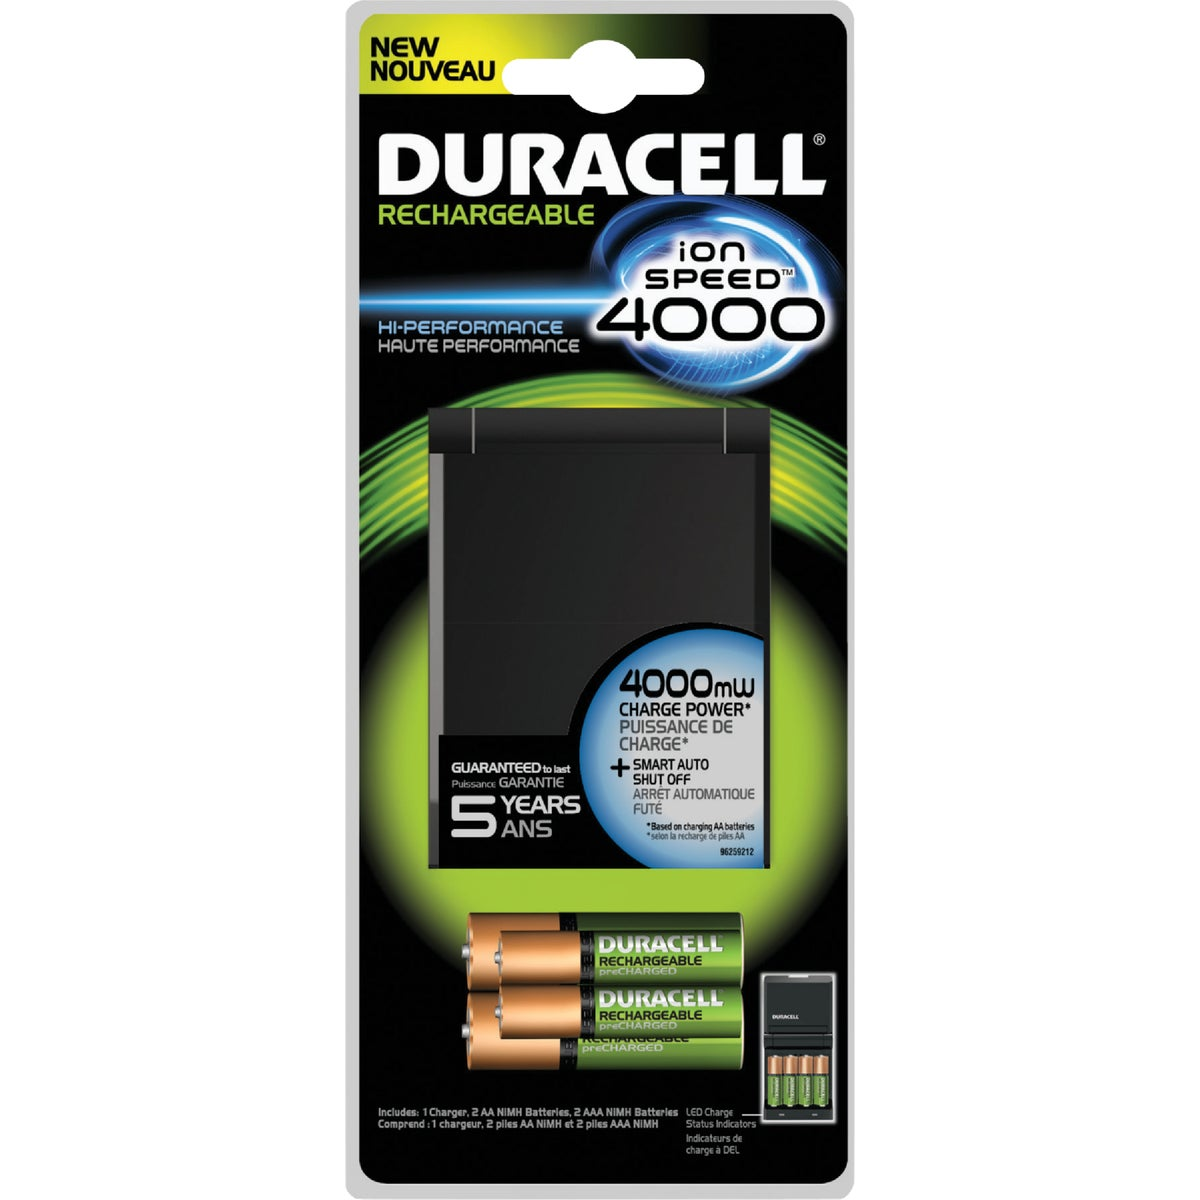 DURACELL ION SPEED 4000